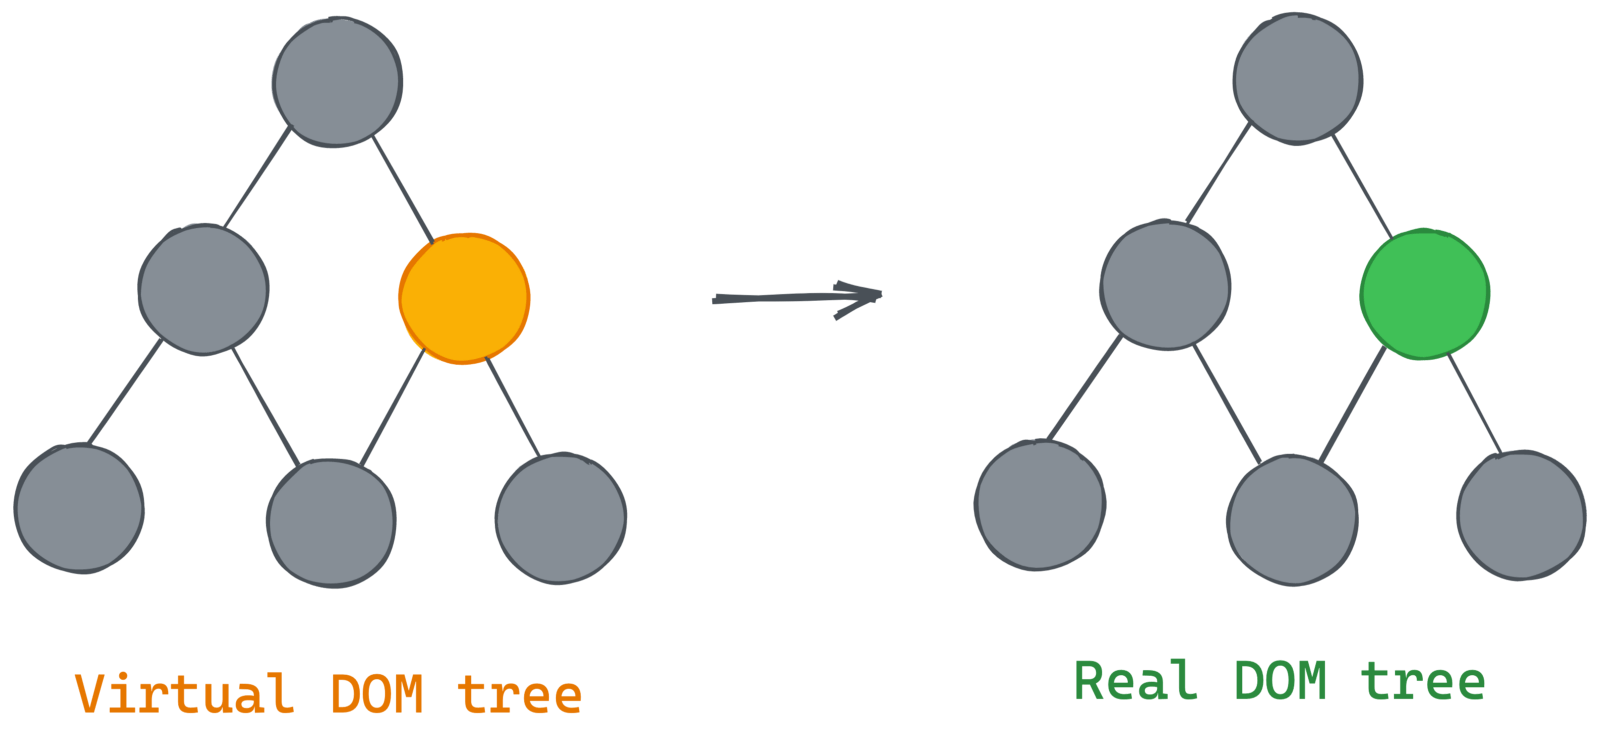 Virtual DOM tree mimics the same tree structure as the real DOM tree, even highlighting the same node.